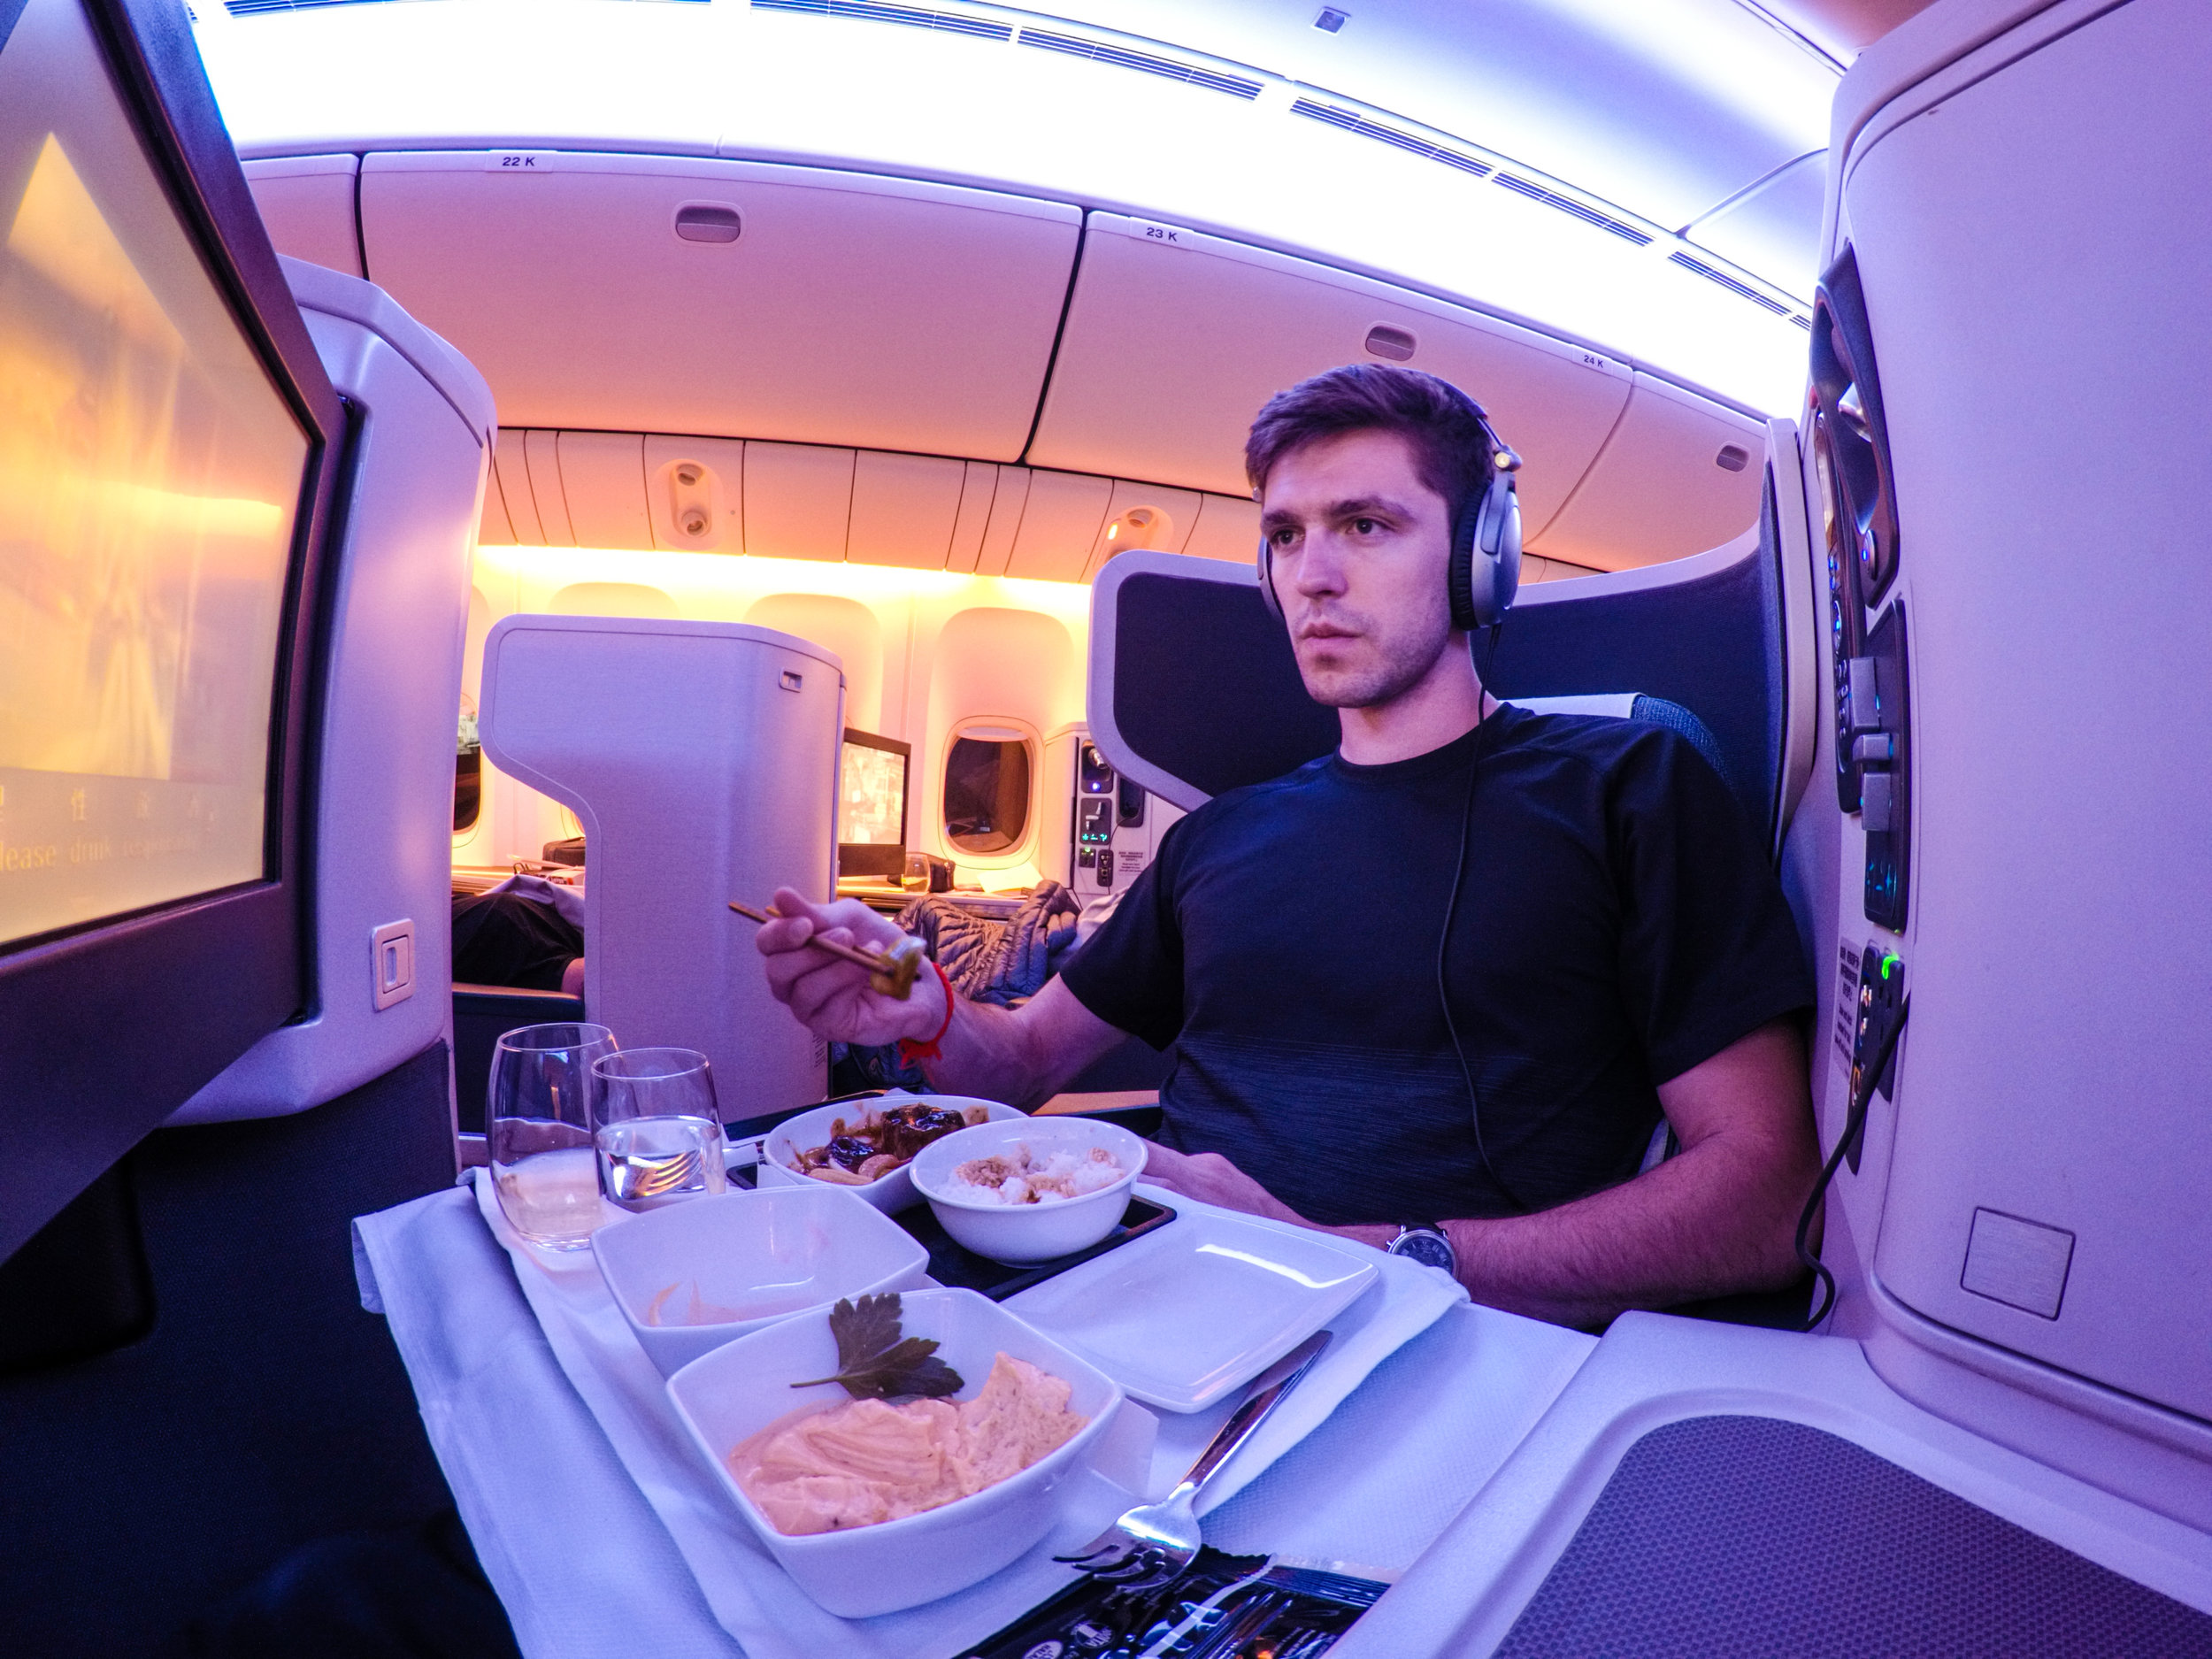 Flight Review - Checkout a comprehensive review of Cathay Pacific Business Class HKG-LAX